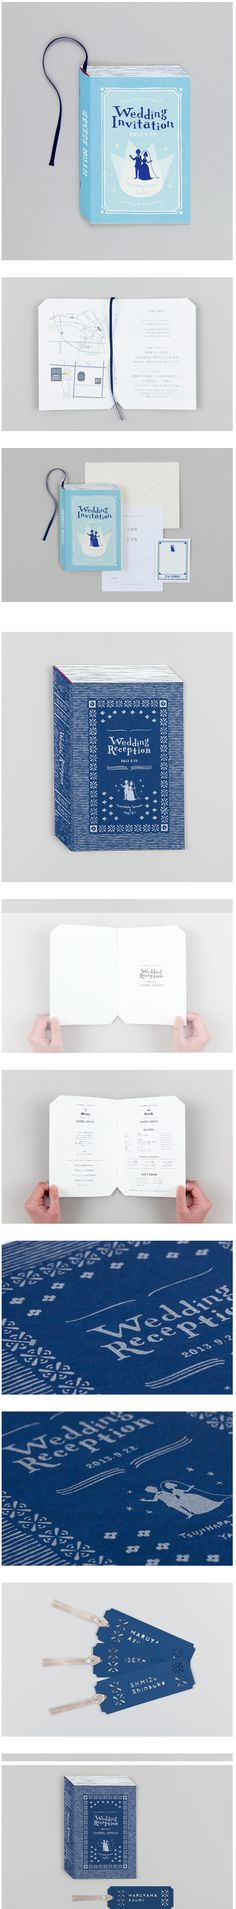 Wedding card design layout fonts ideas for 2019 Stationery Design, Invitation Design, Branding Design, Packaging Design, Invitation Ideas, Paper Design, Book Design, Layout Design, Print Design